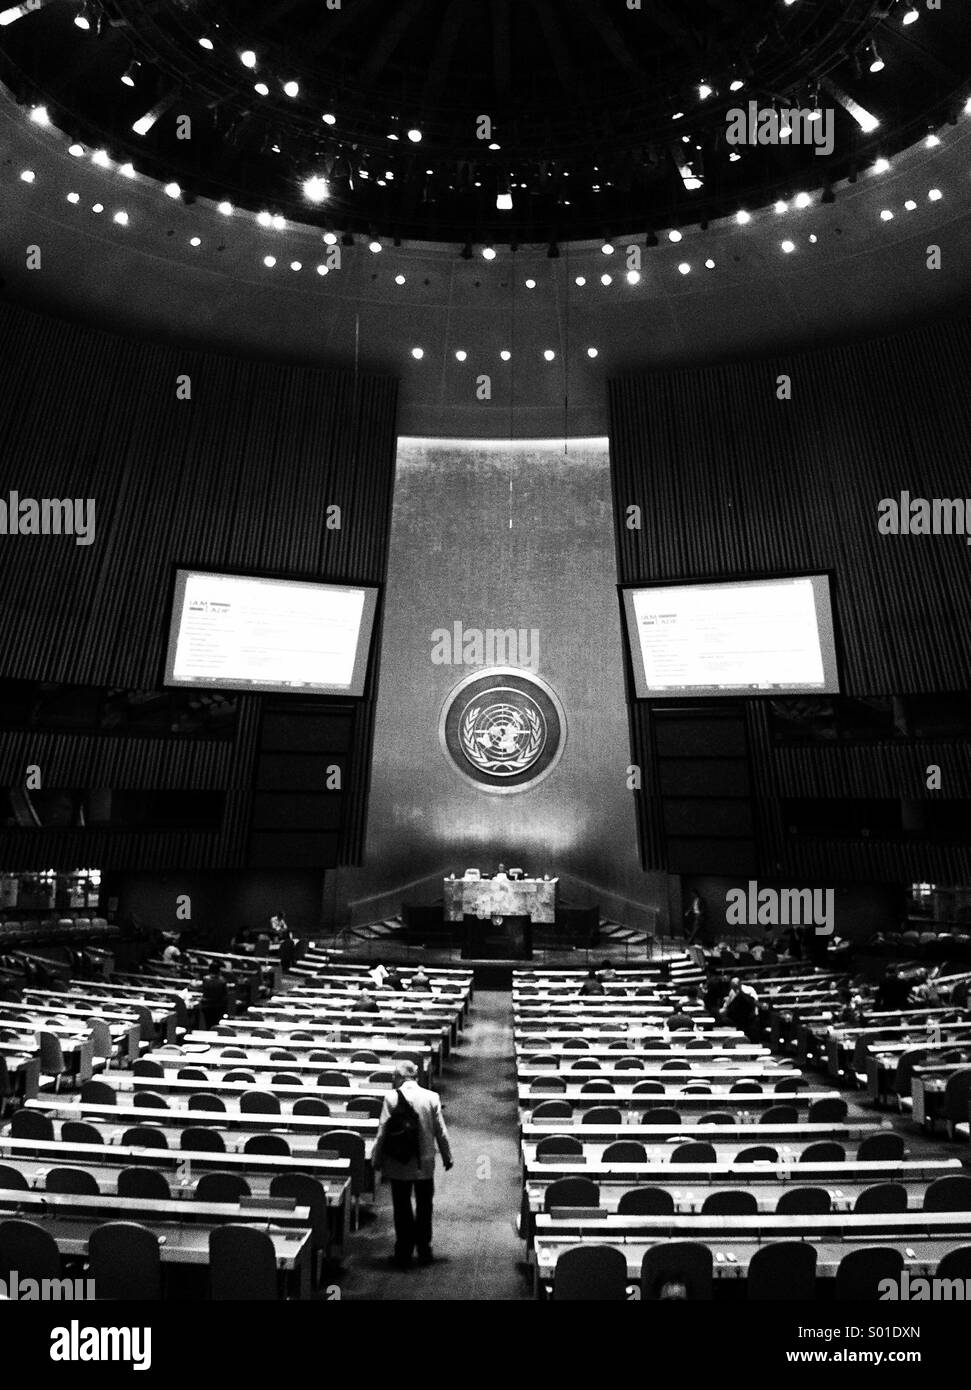 UN General Assembly chamber, New York - the heart of international diplomacy - Stock Image